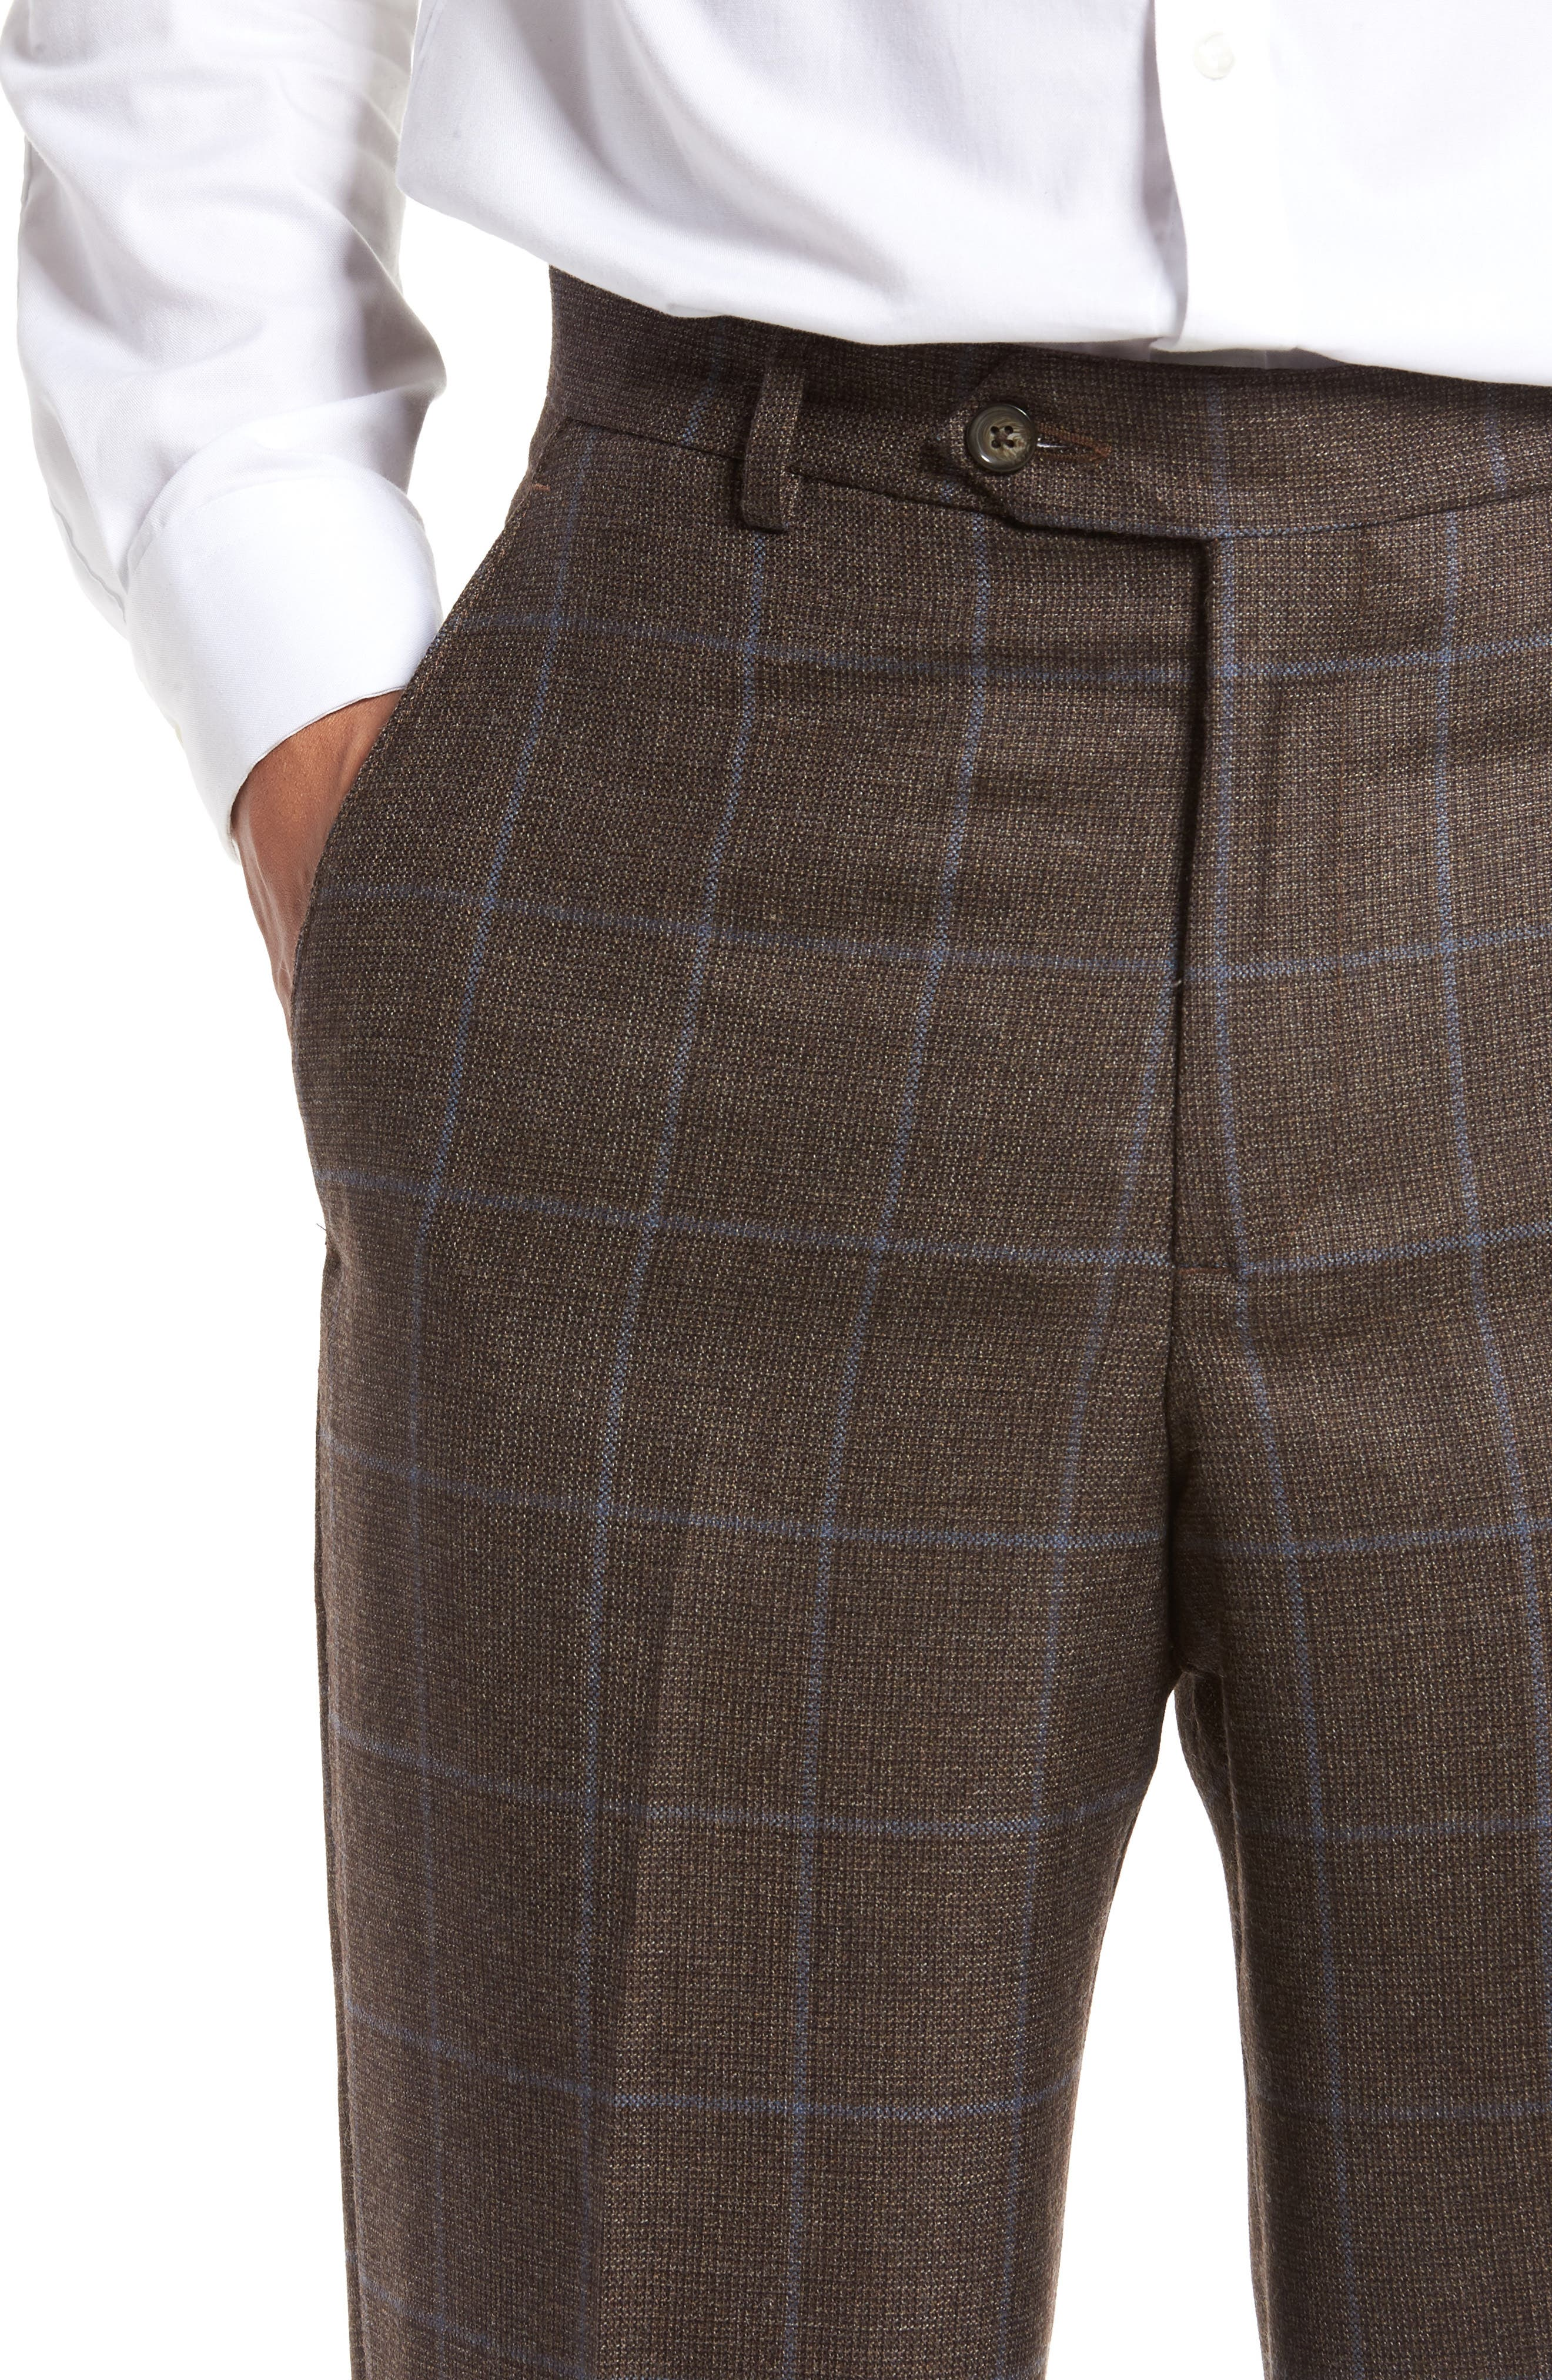 Flat Front Windowpane Wool Trousers,                             Alternate thumbnail 5, color,                             200